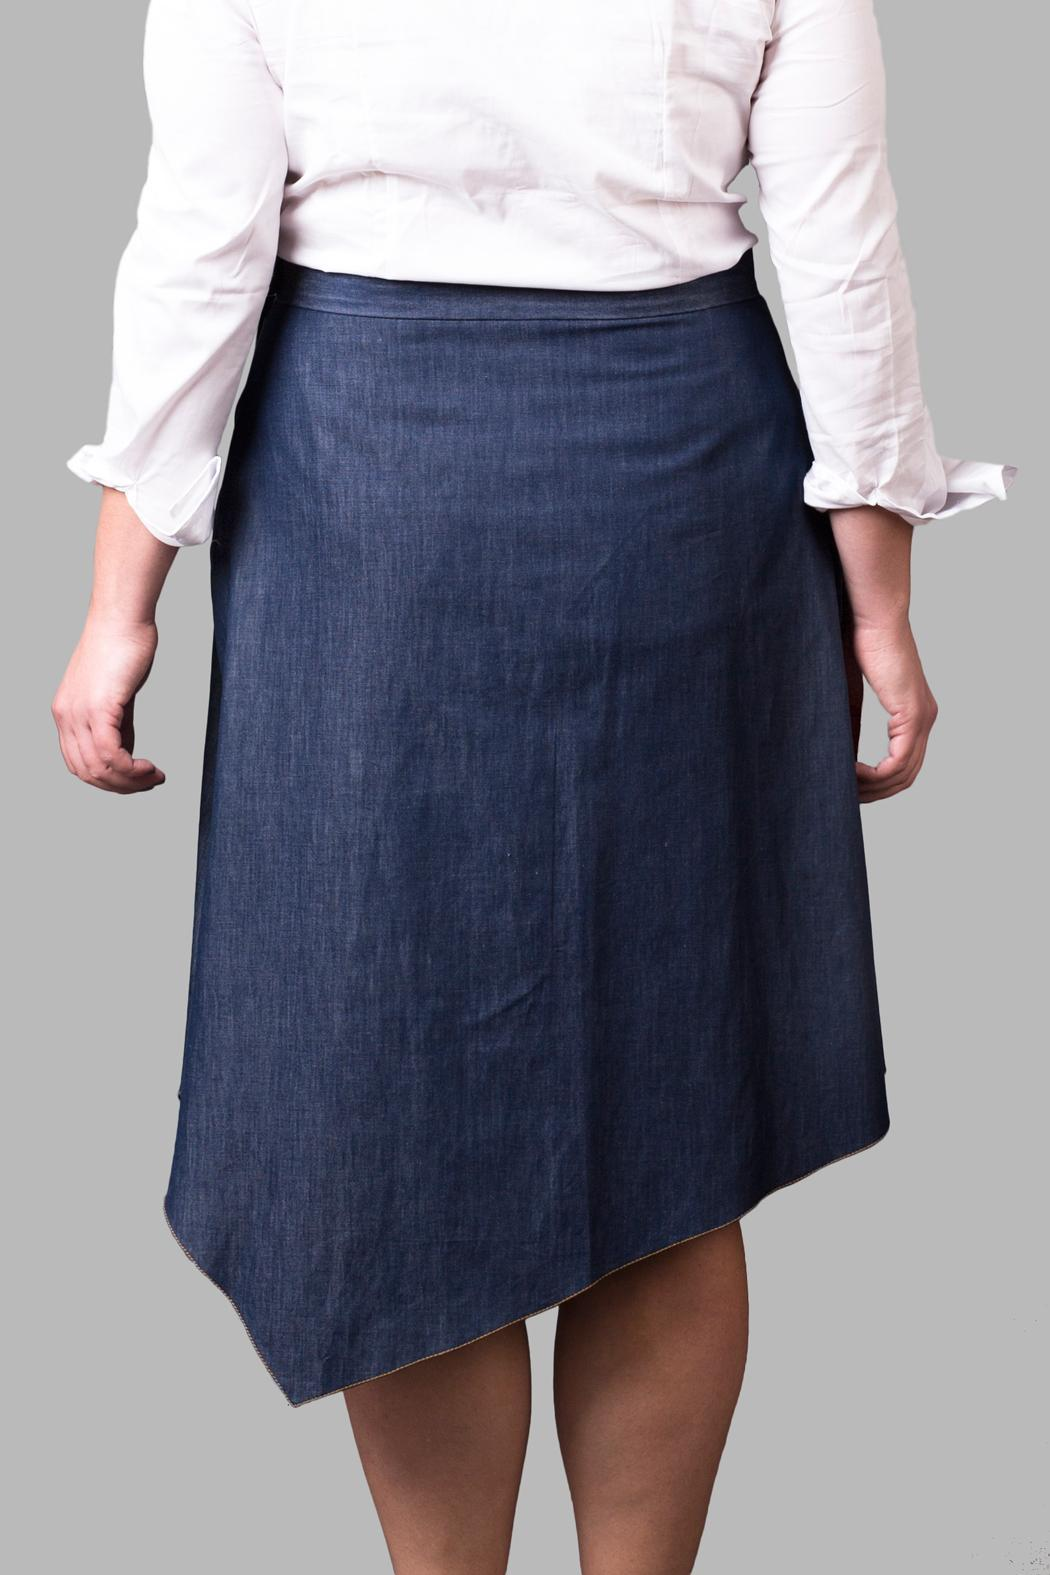 Yona New York Denim Skirt - Side Cropped Image